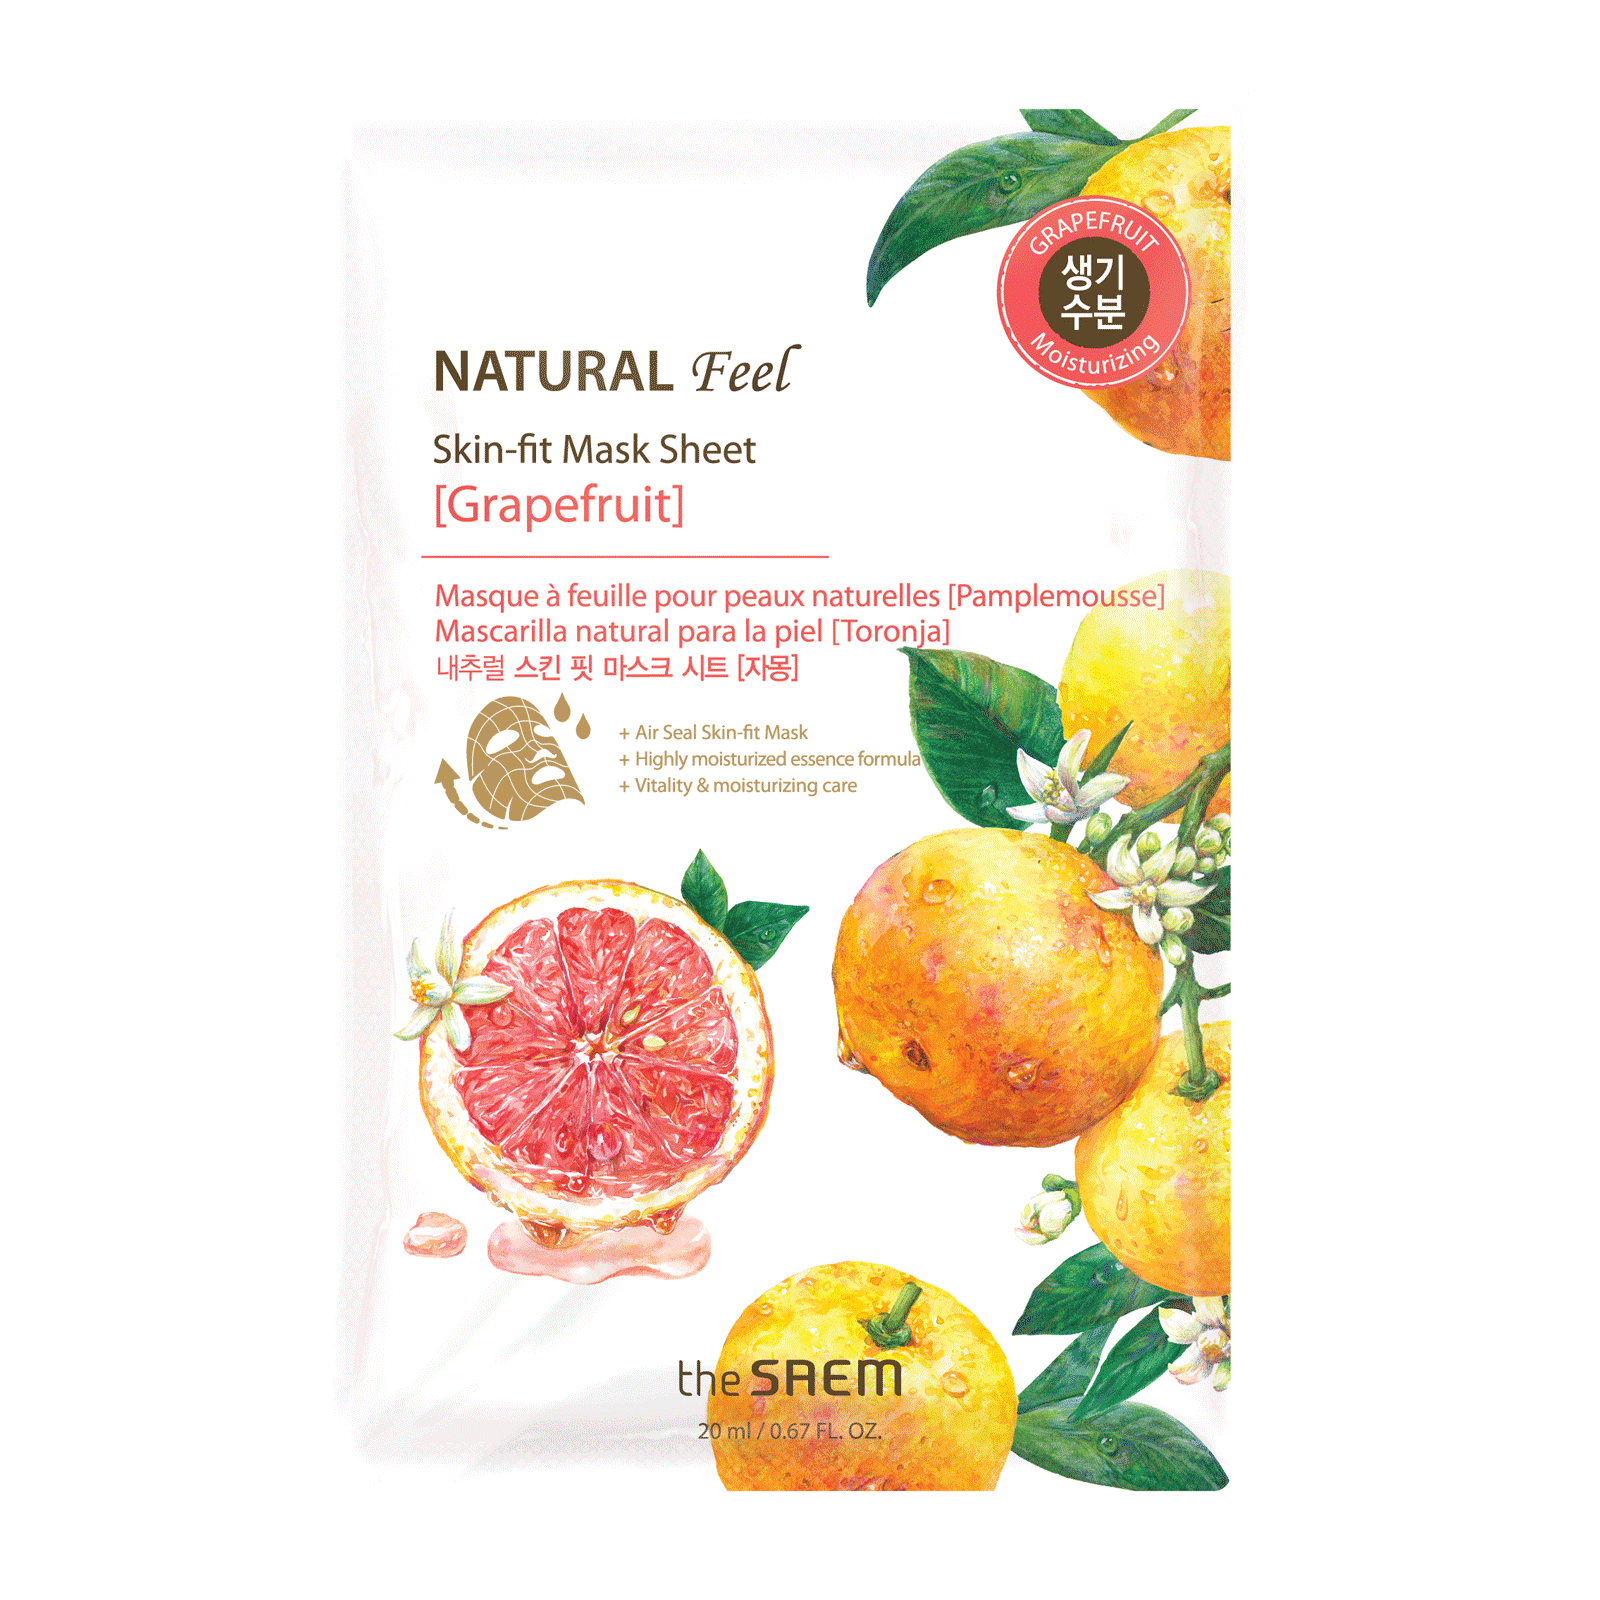 Natural Feel Sheet Mask - Grapefruit